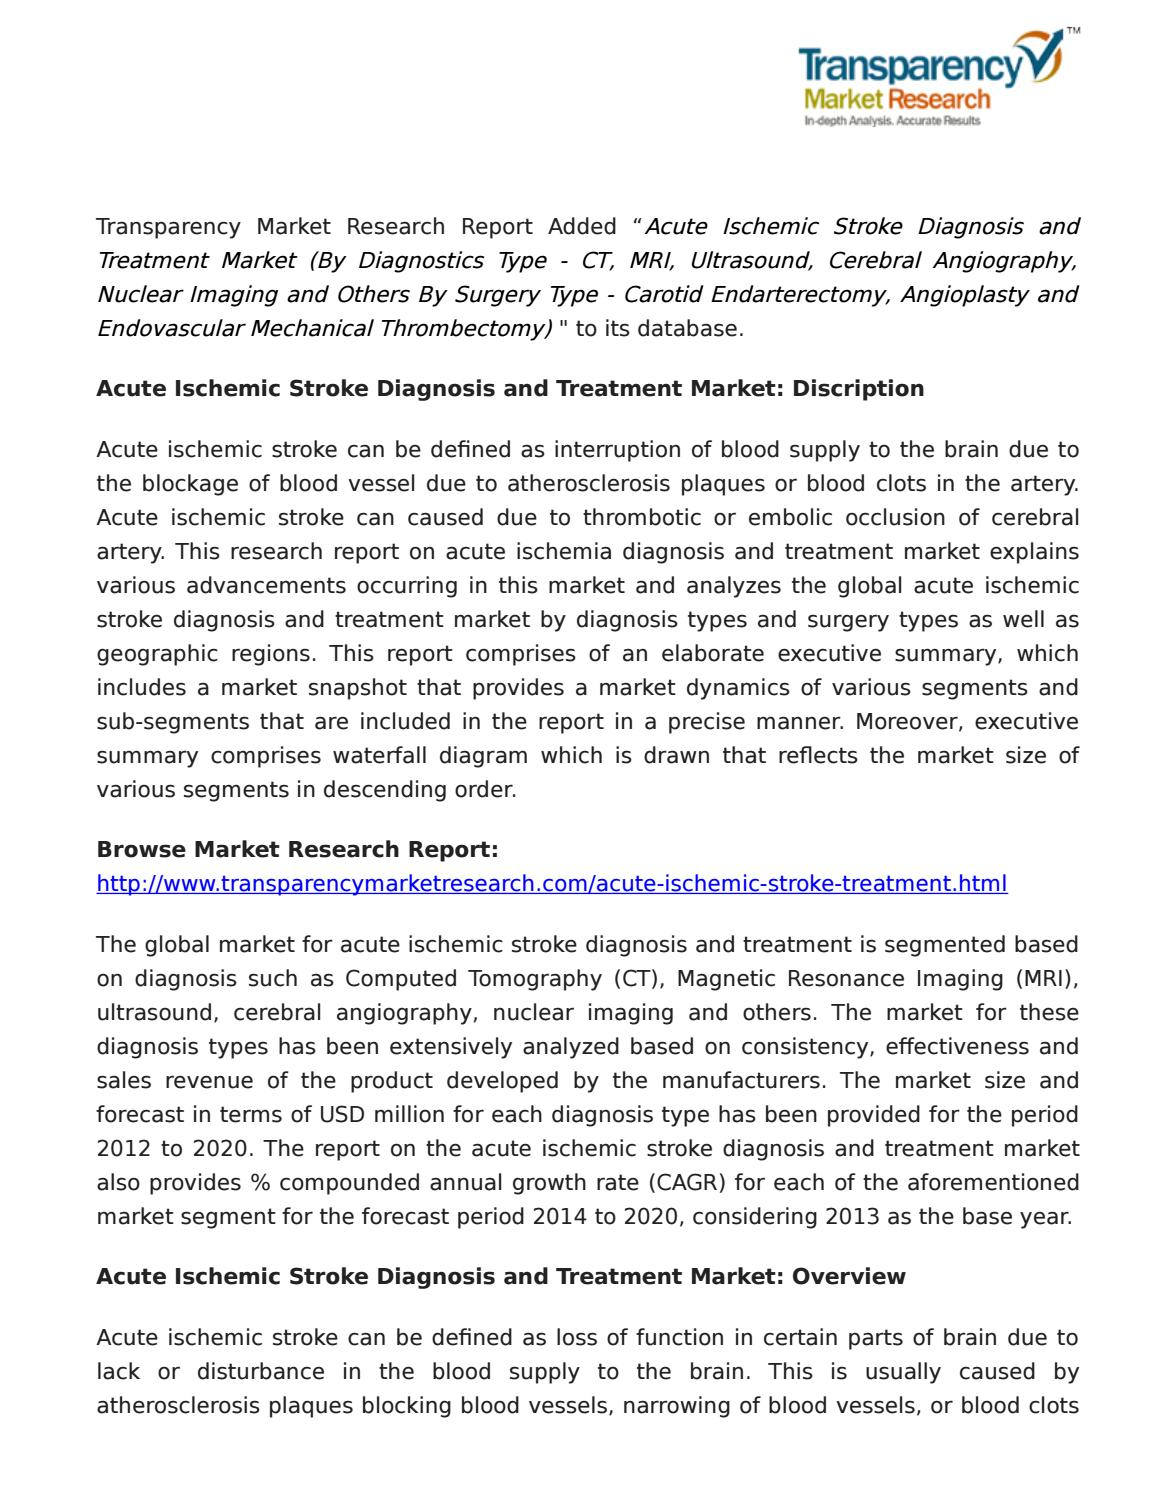 acute ischemic stroke diagnosis and treatment market: a booming